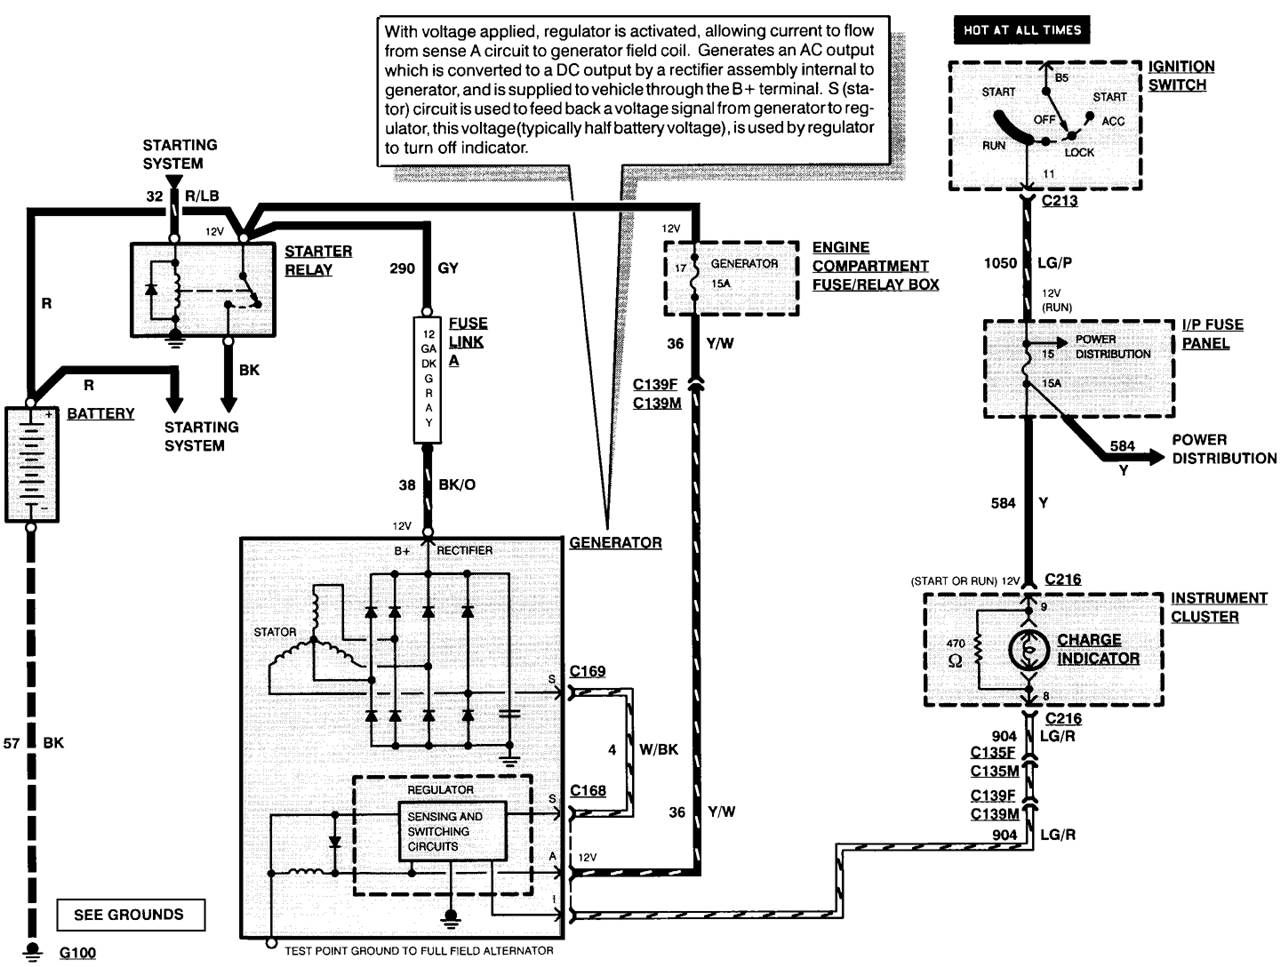 1989 mitsubishi alternator wiring diagram schematic diagram1989 mitsubishi alternator wiring diagram wiring diagram new holland alternator wiring diagram 1989 mitsubishi alternator wiring